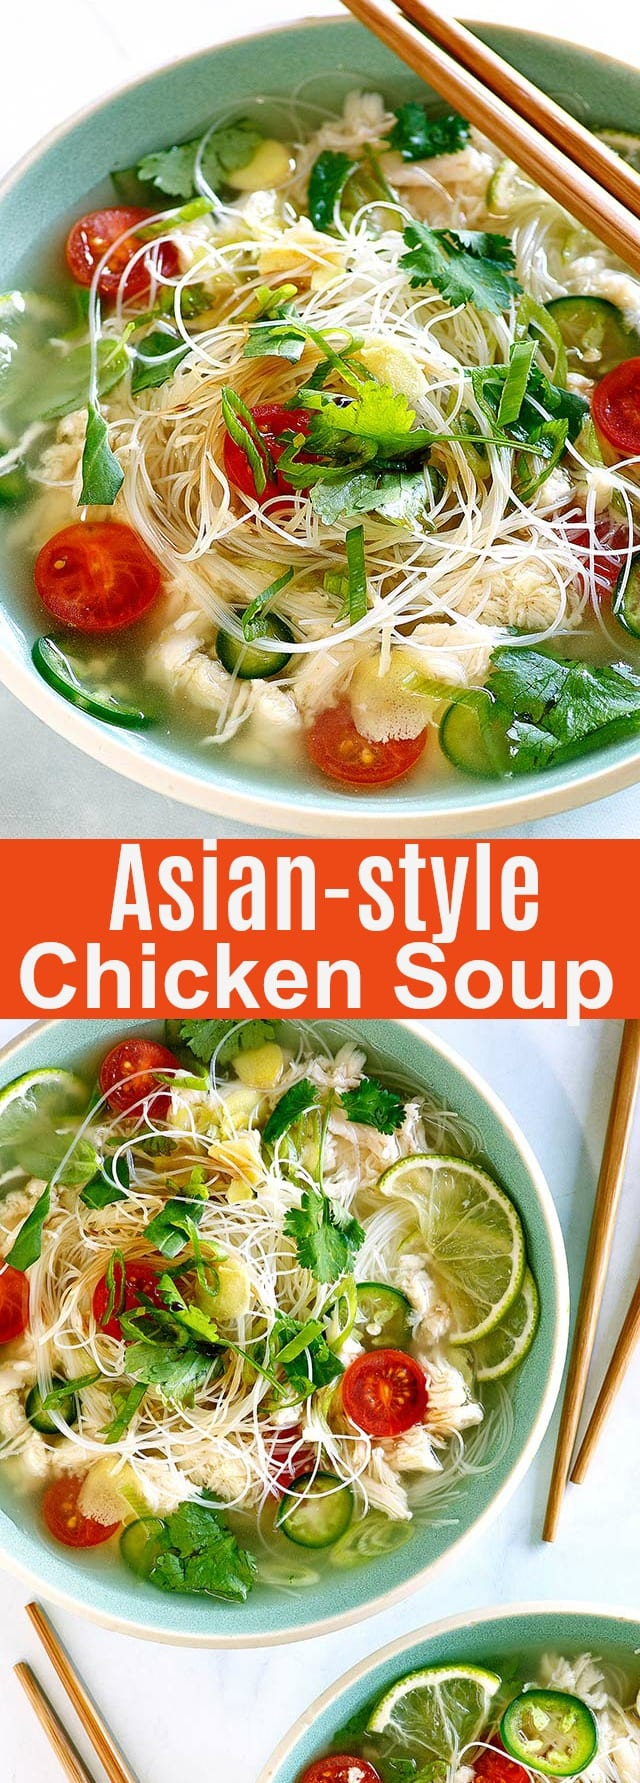 Asian Chicken Soup - healthy and low-carb chicken soup recipe with Asian rice noodles, herbs and ingredients. This is comfort food for the soul. So easy to make and delicious!